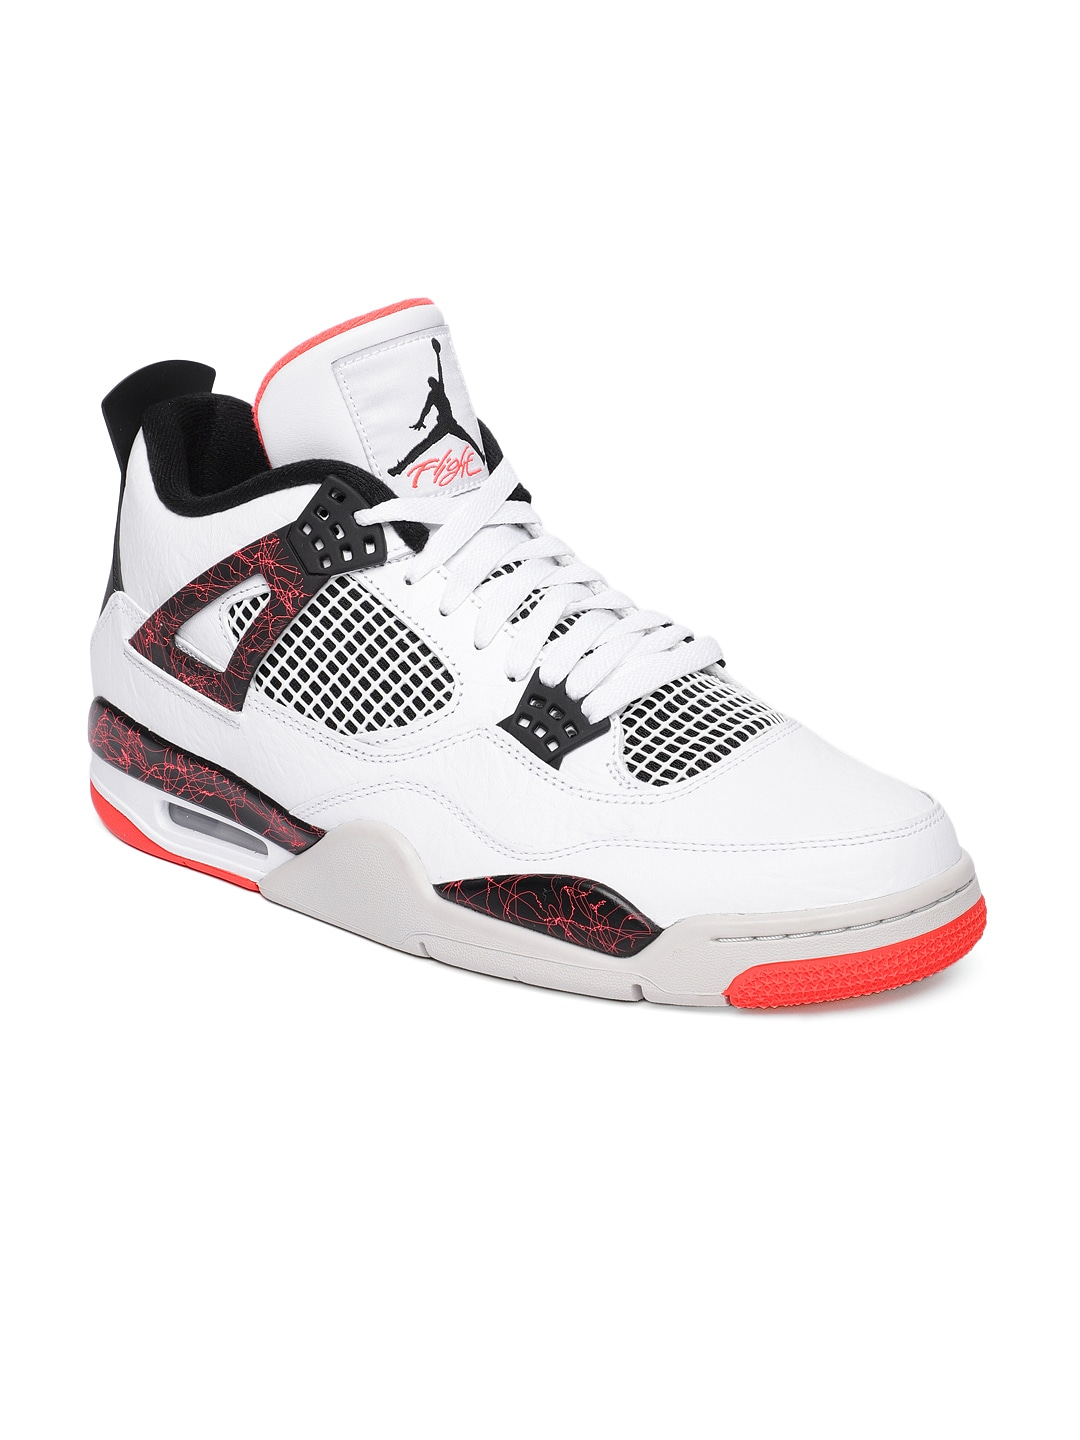 4706cc89794c33 Jordan Shoes - Buy Jordan Shoes For Men Online in India